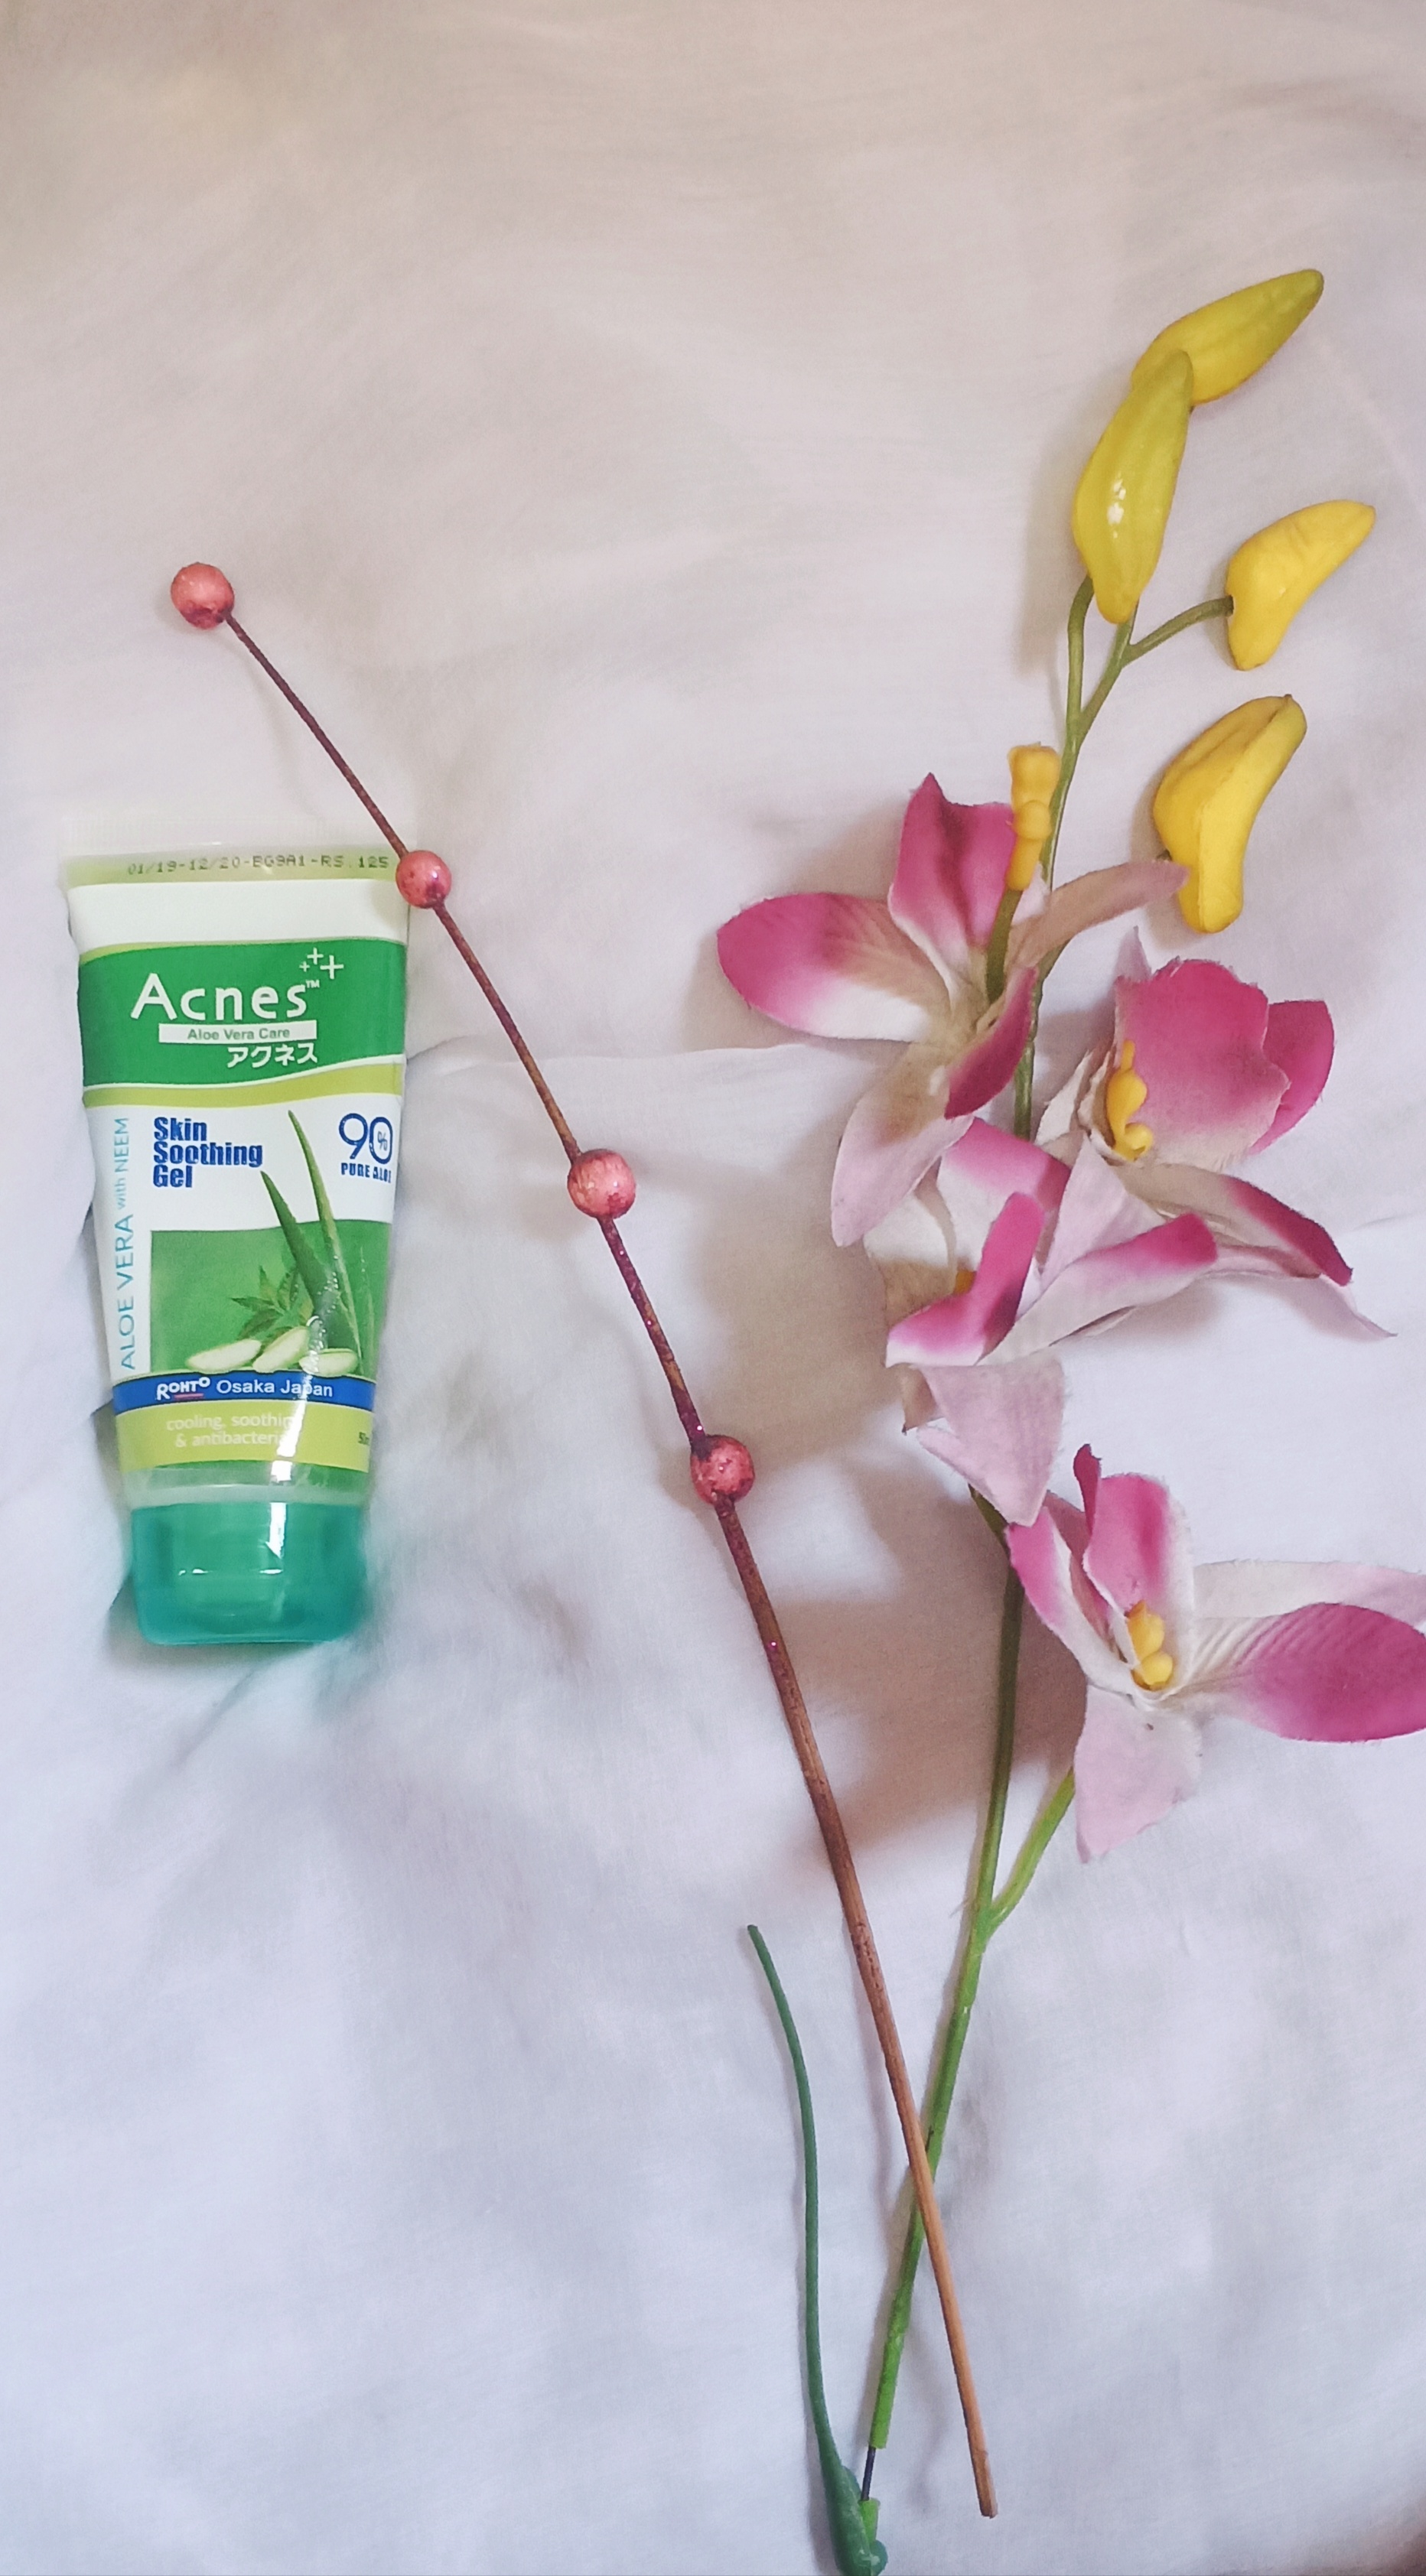 Acnes Skin Soothing Gel-Suitable for all Skin types-By trishaj7